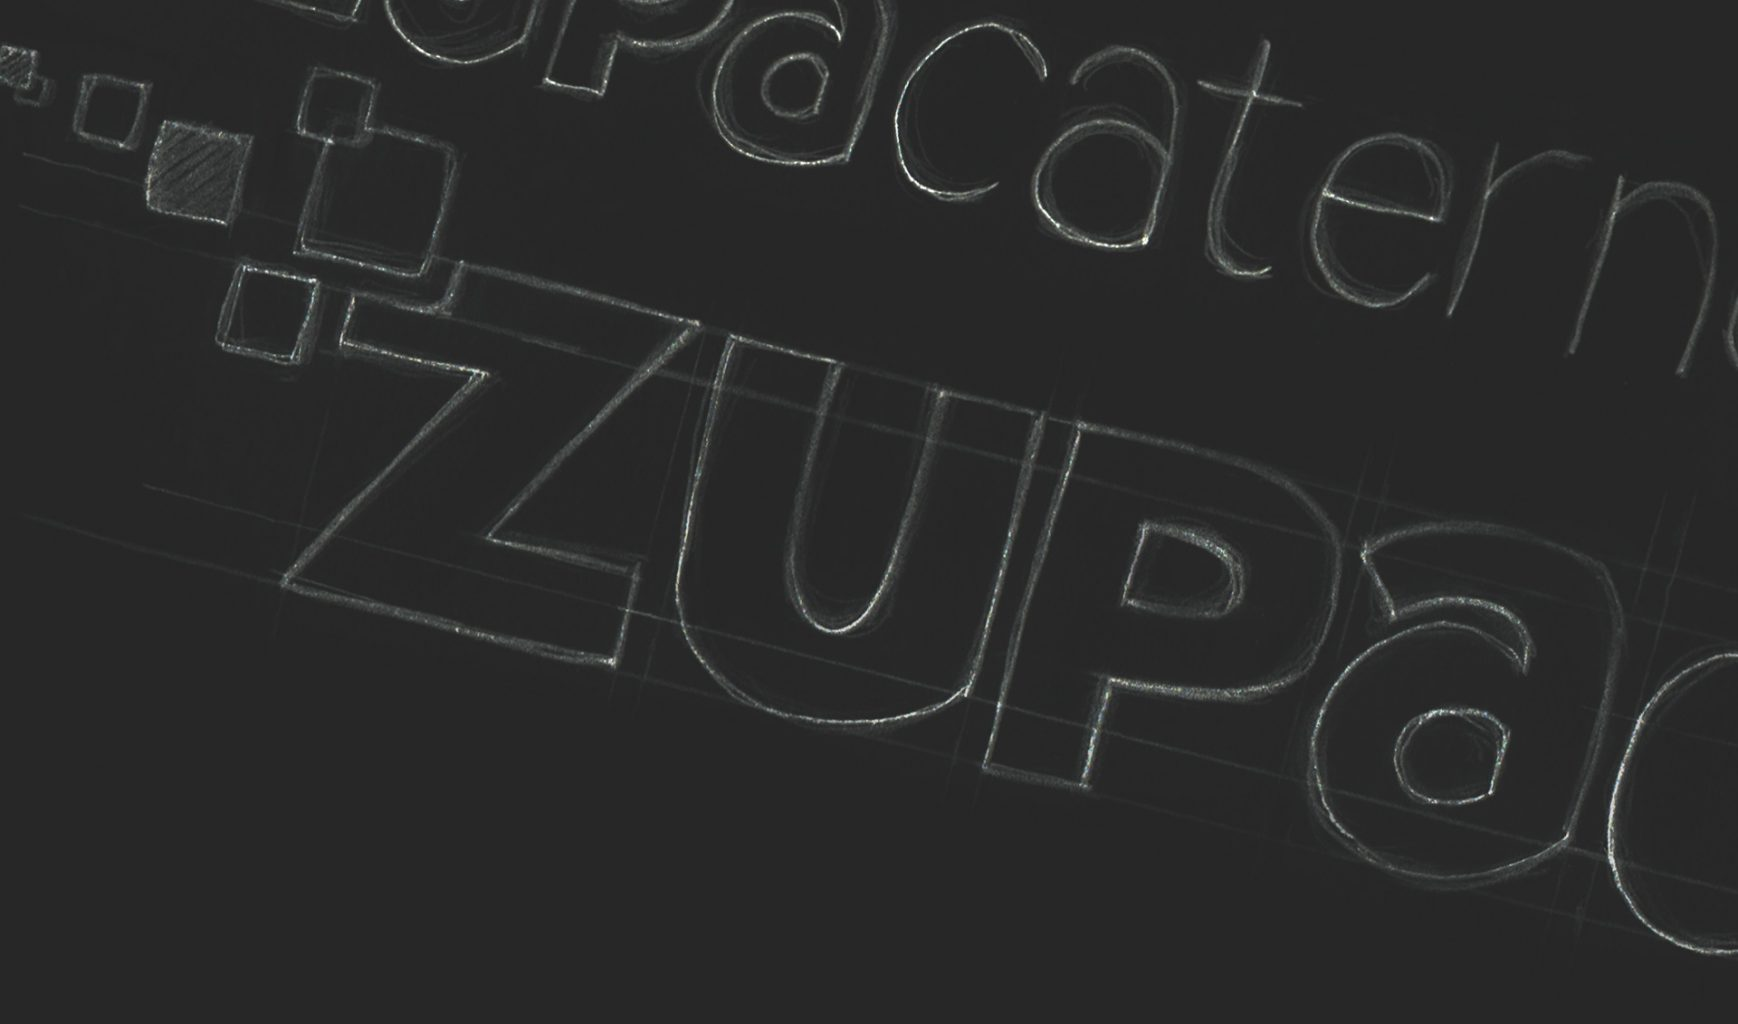 ZupaCaternet logo sketch